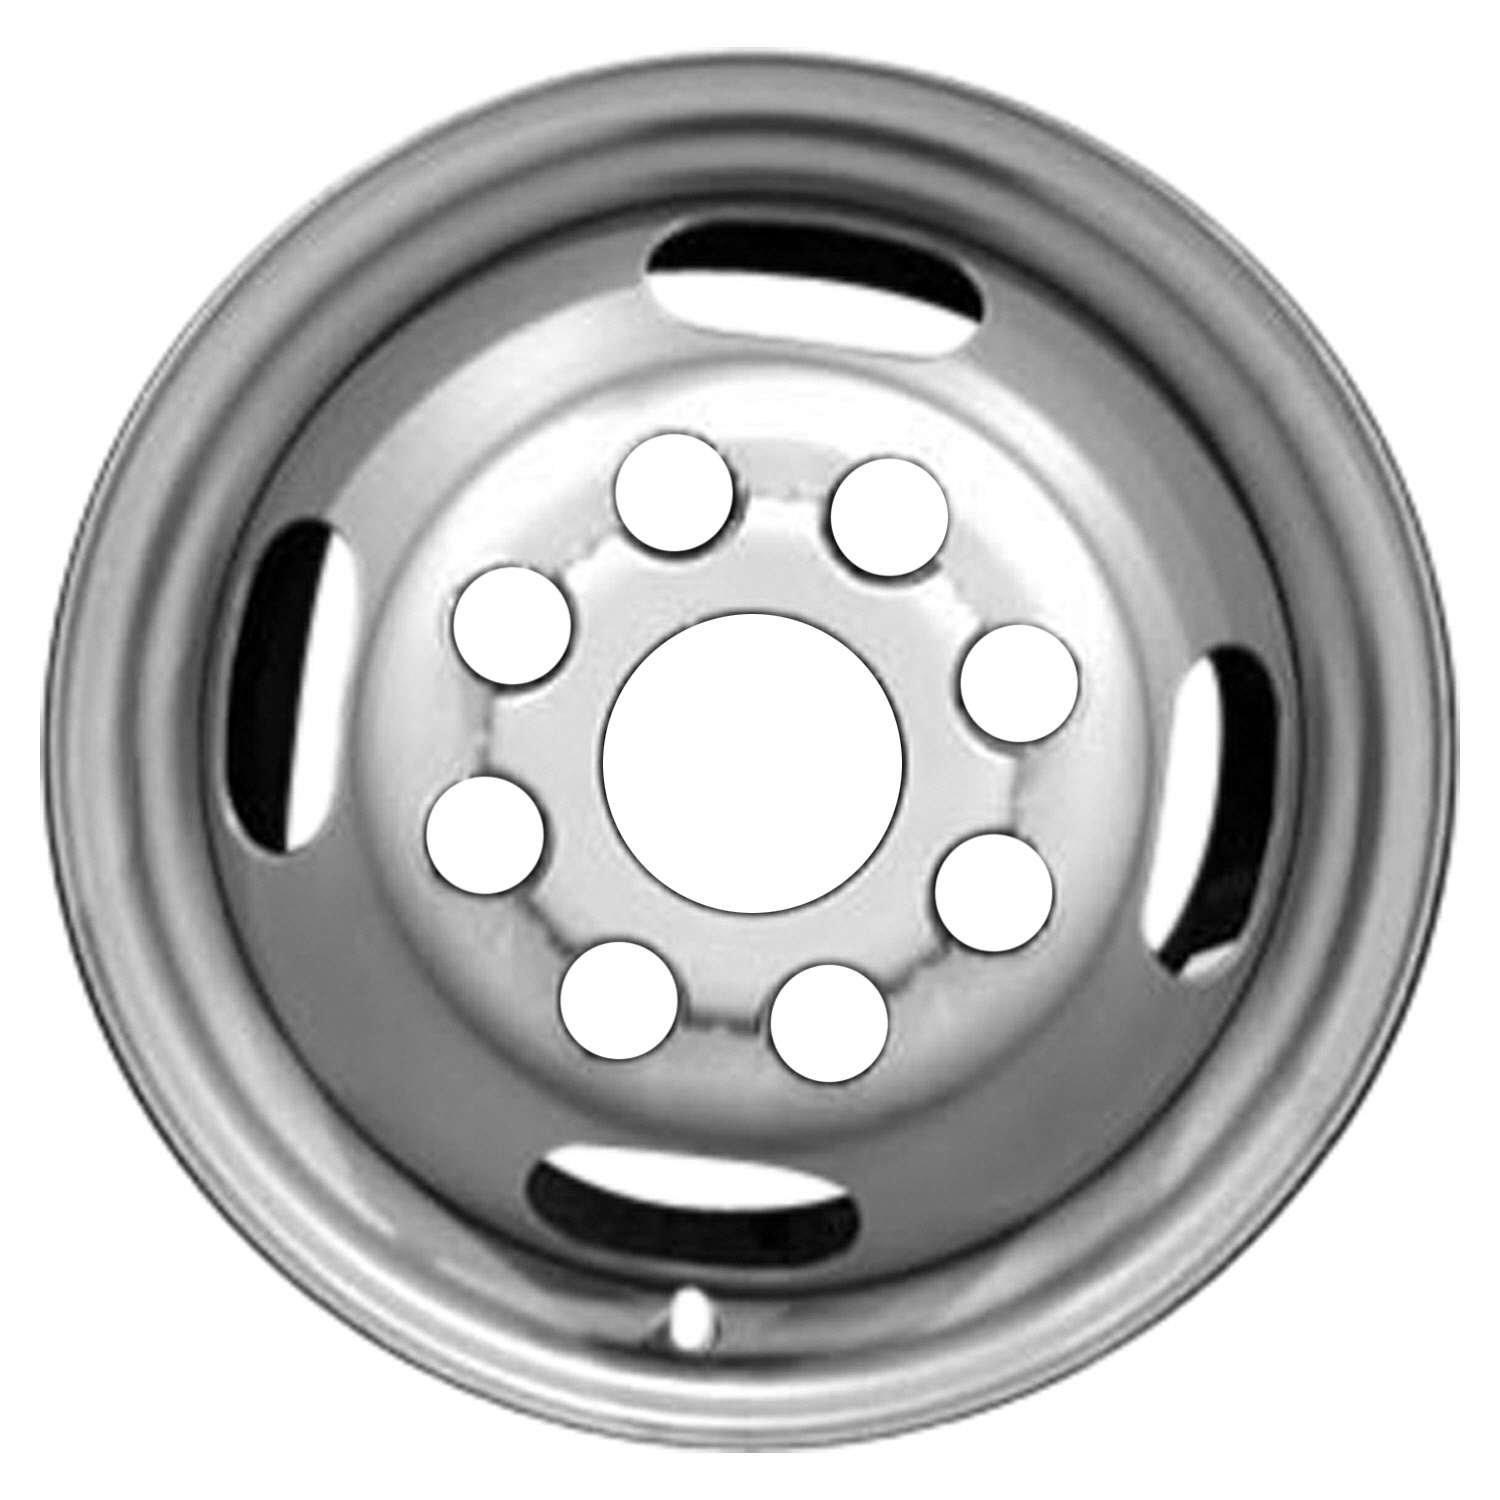 New 16x6 5 steel wheel rim dull silver full face painted 5125